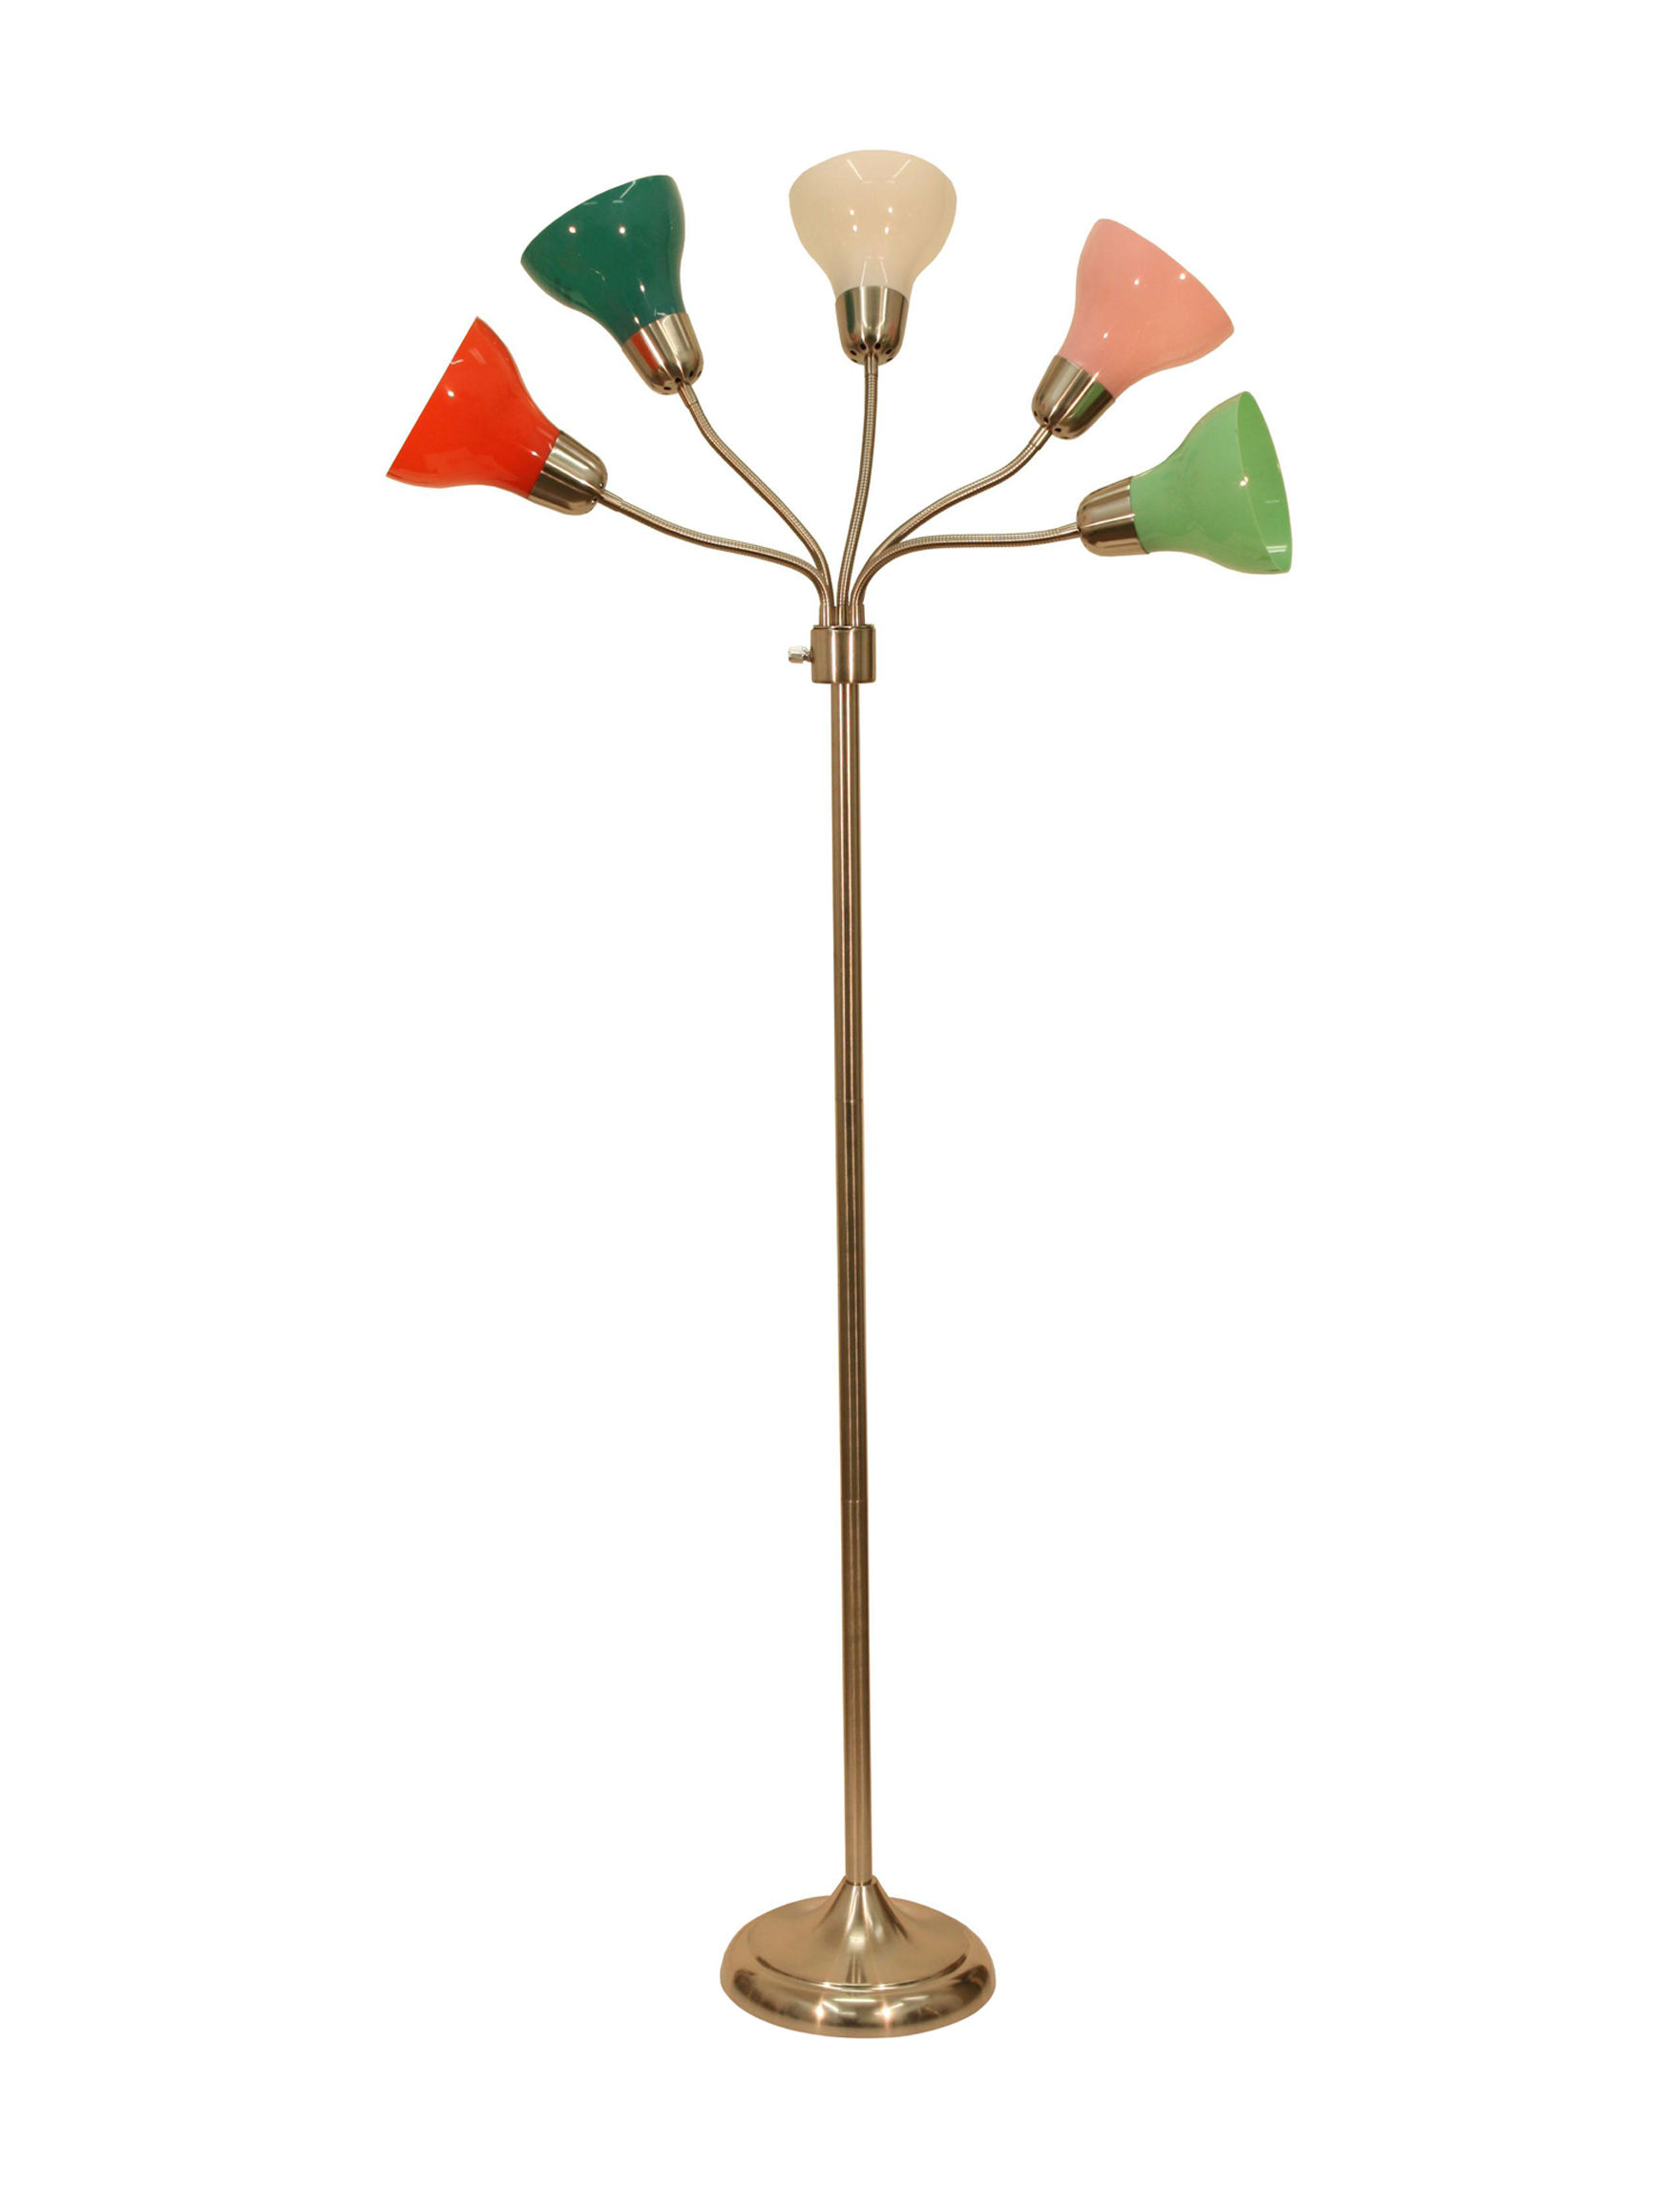 Decor Therapy Steel Floor Lamps Lighting & Lamps